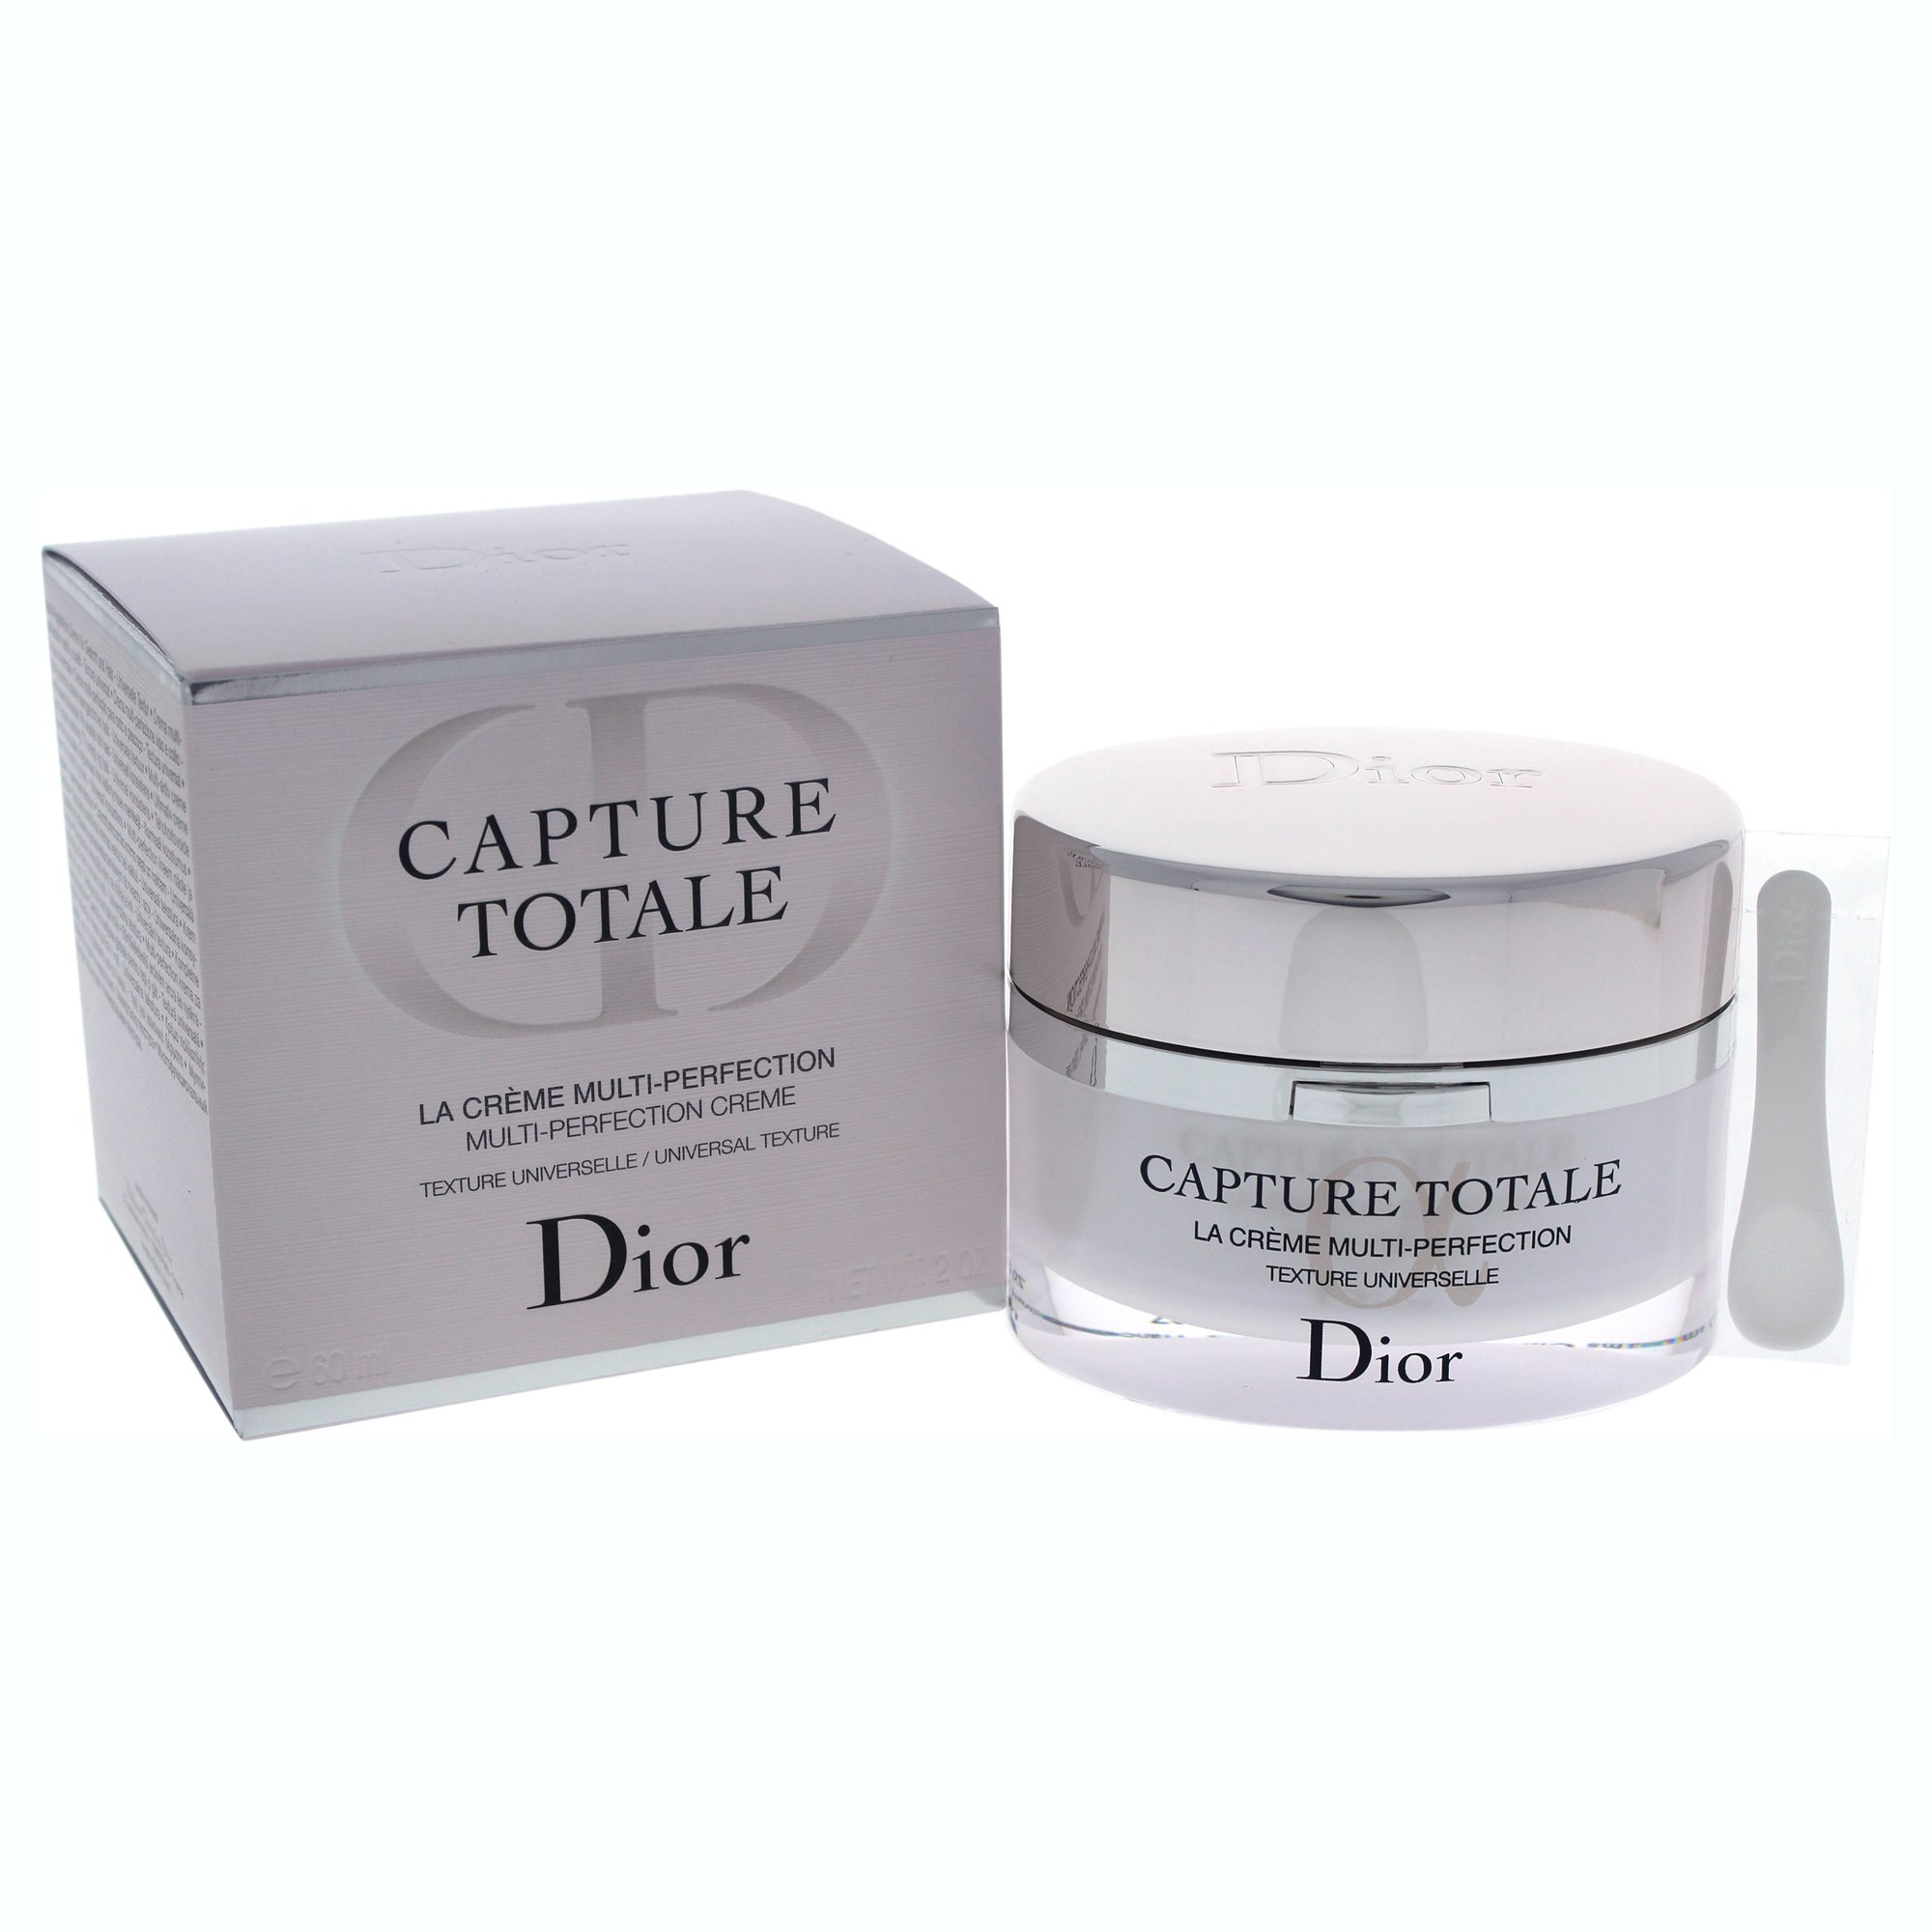 Christian Dior Capture Totale Multi Perfection Creme for Women, 2 Ounce